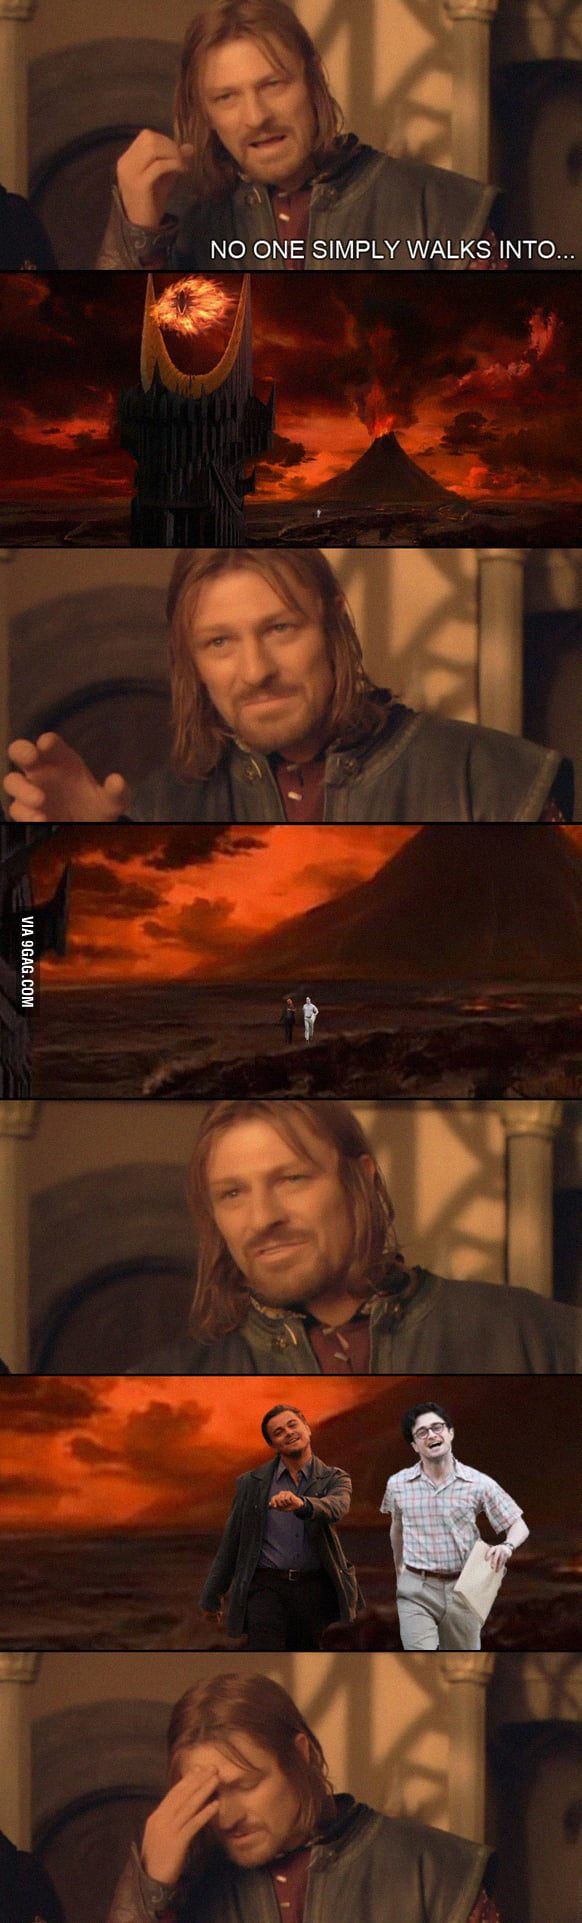 Two do not simply walk into Mordor...